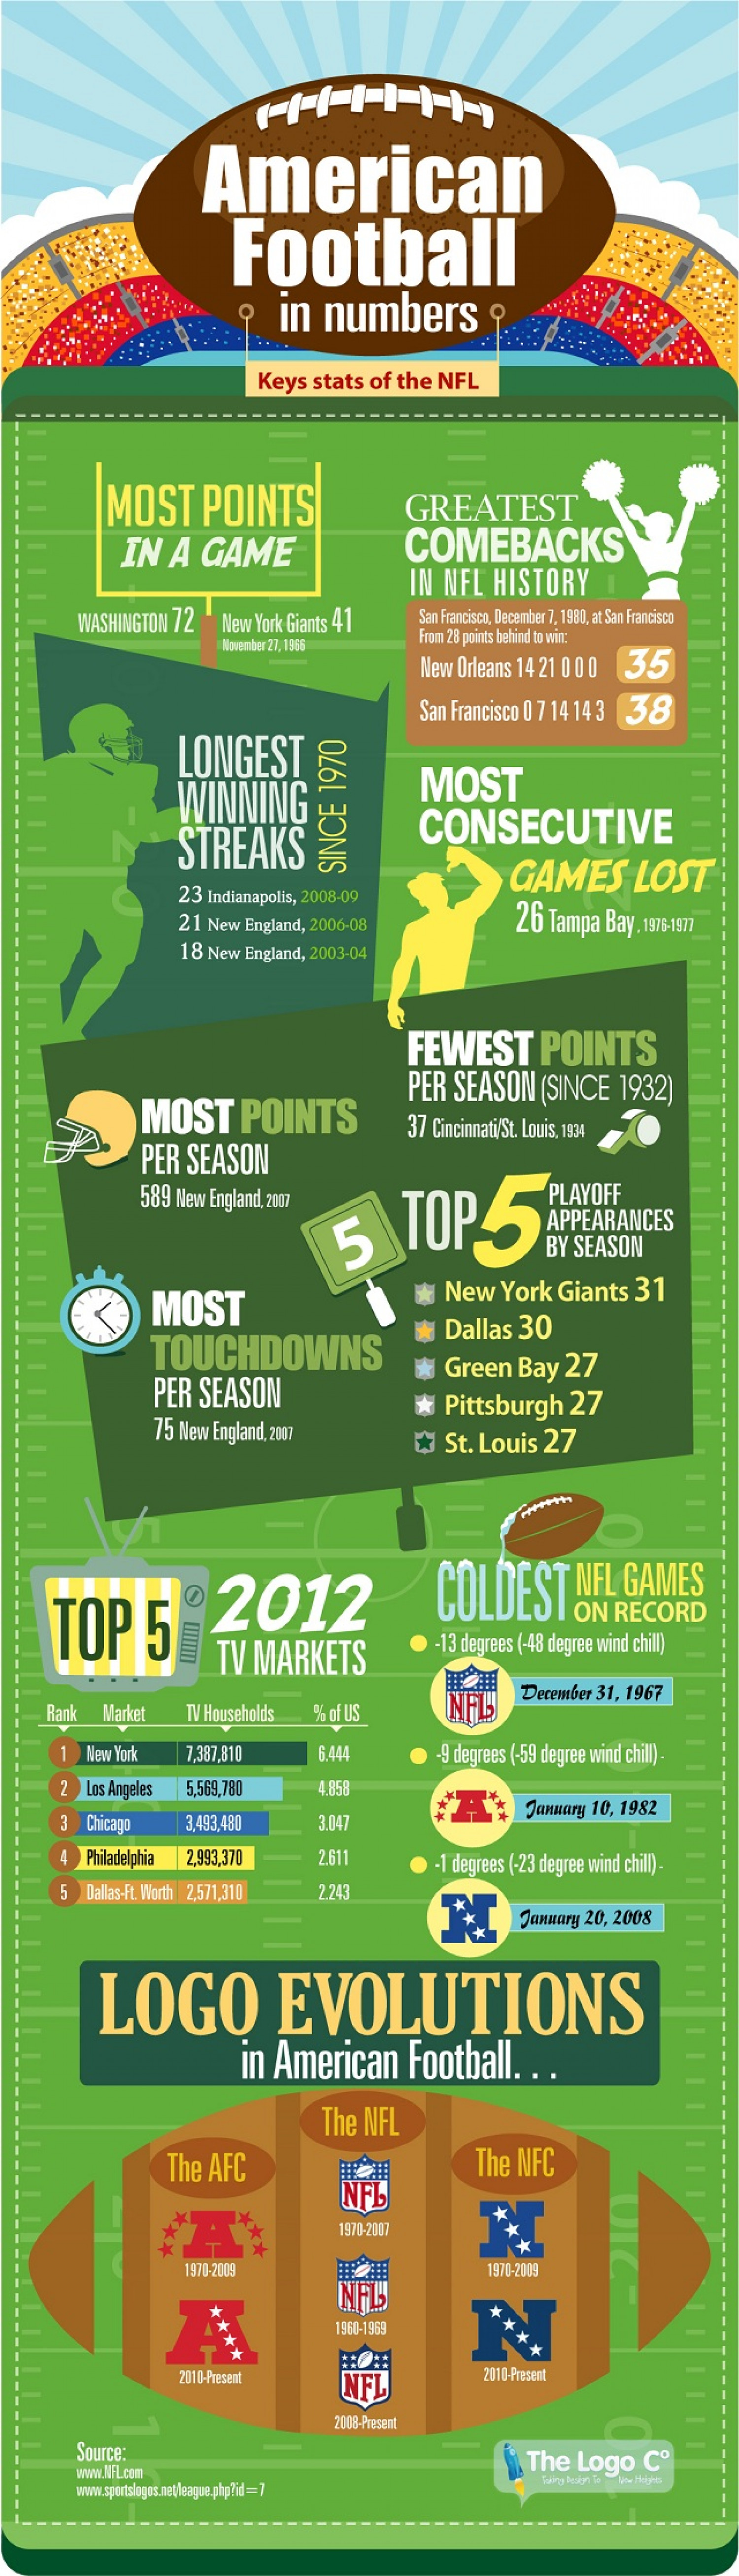 American Football in numbers Infographic